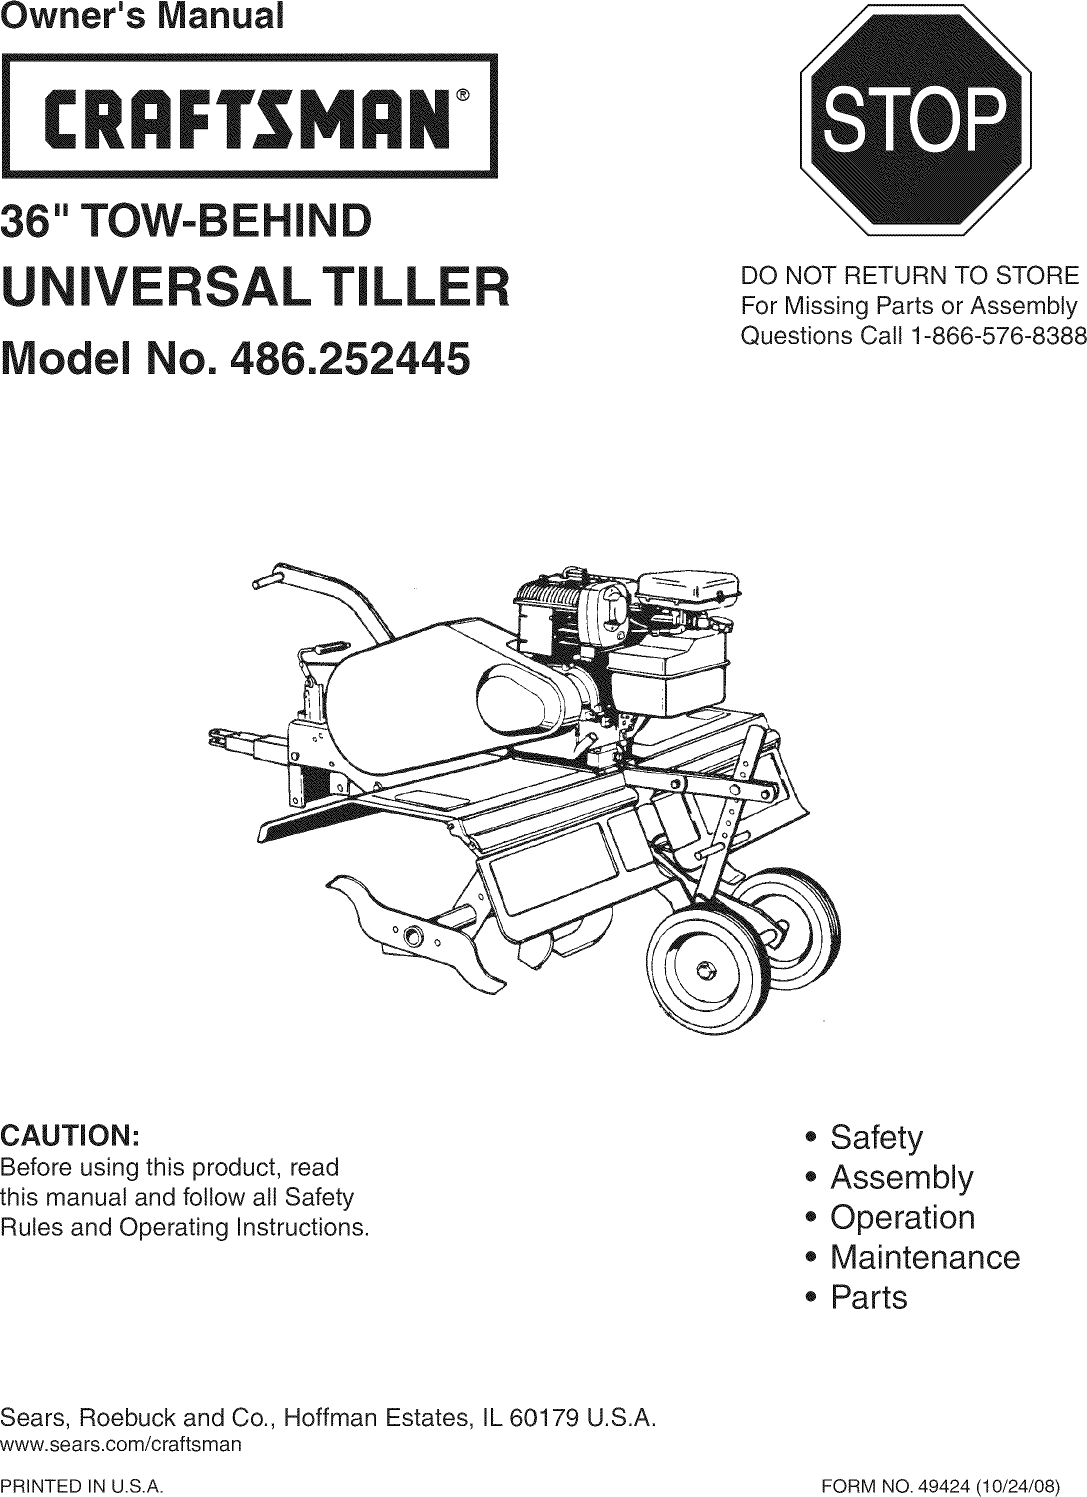 Craftsman 486252445 User Manual 36 TOW BEHIND TILLER